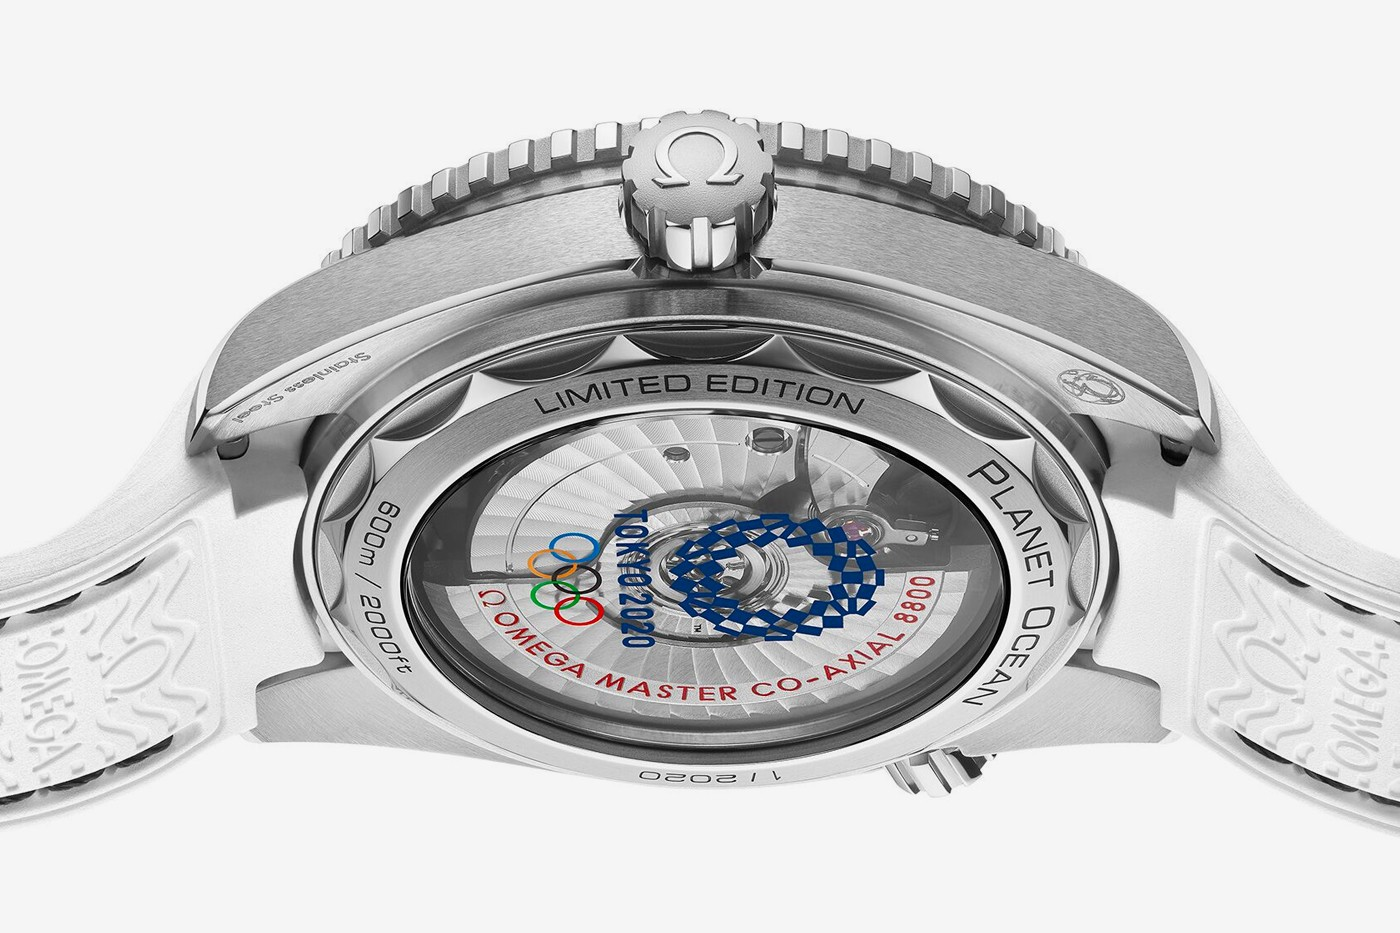 The Omega Seamaster will have two limited-edition timepieces